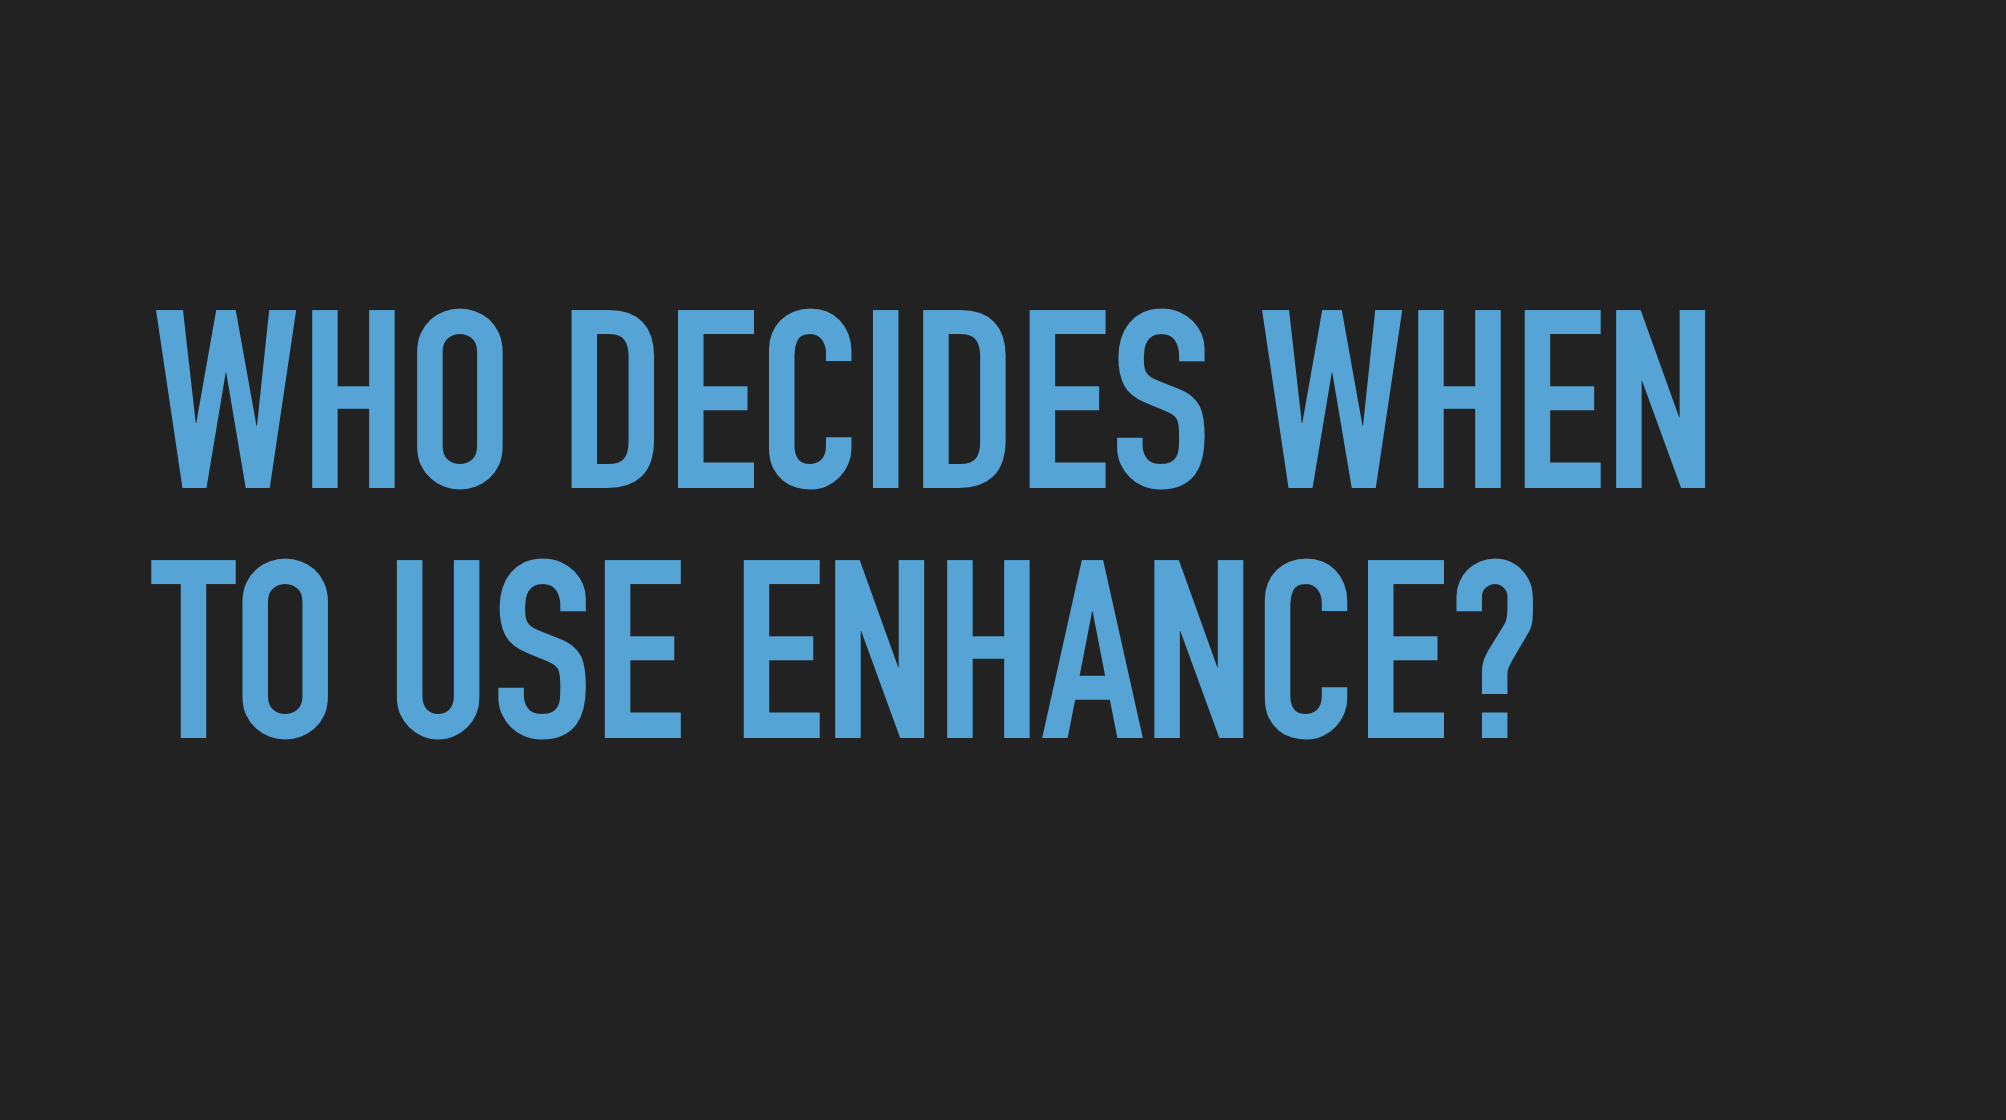 Slide text: Who decides when to use enhance?